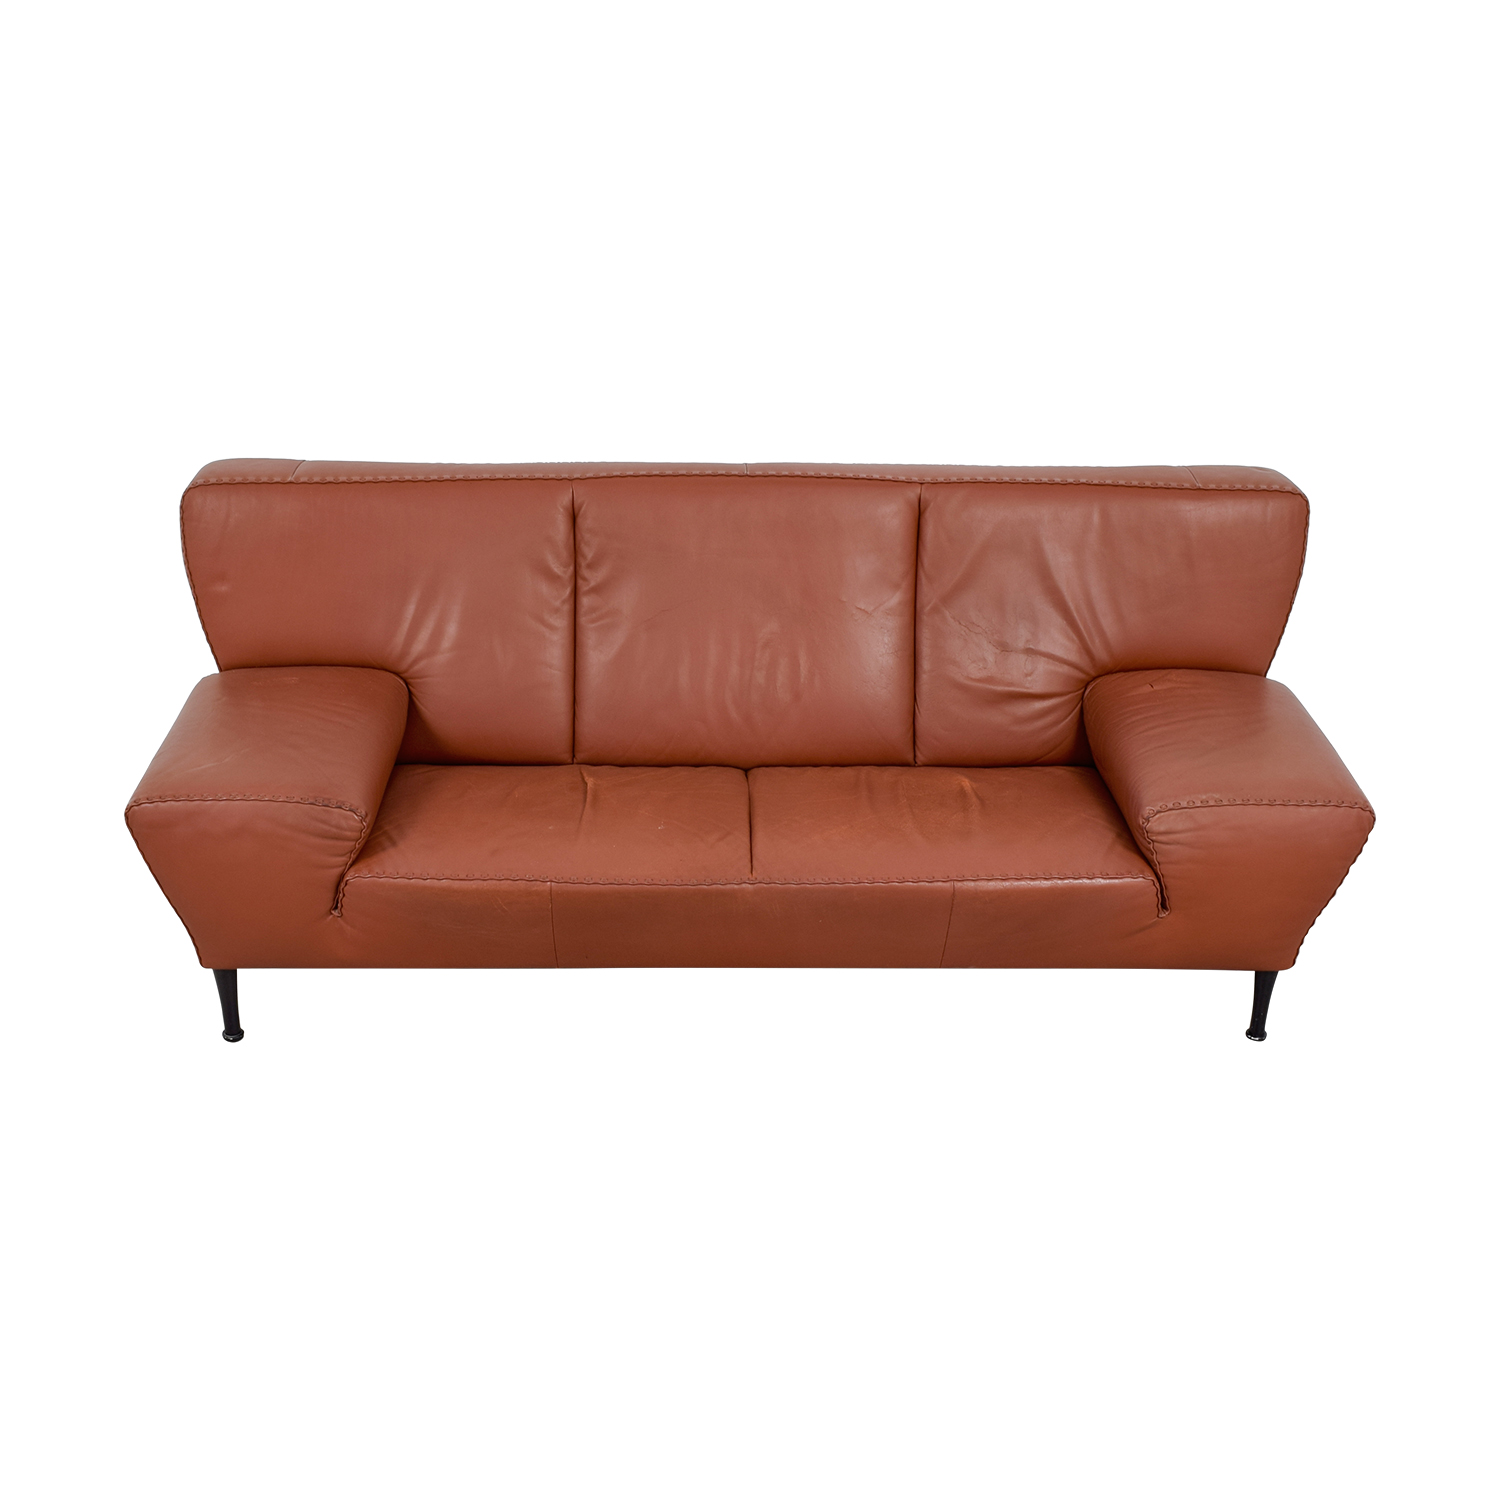 De Sede Paprika Leather Ribbon Detailed Sofa / Classic Sofas